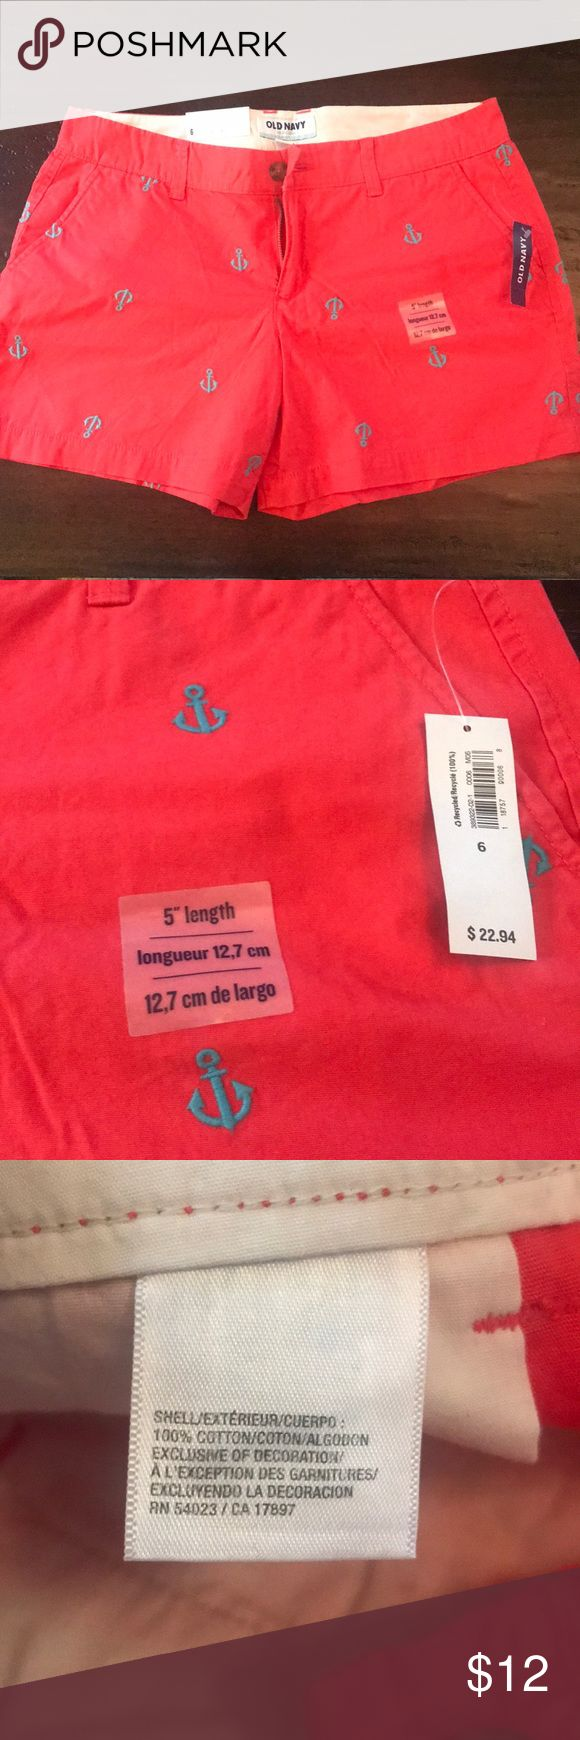 Never been worn anchor shorts! Coral red shorts with turquoise anchors Old Navy Shorts